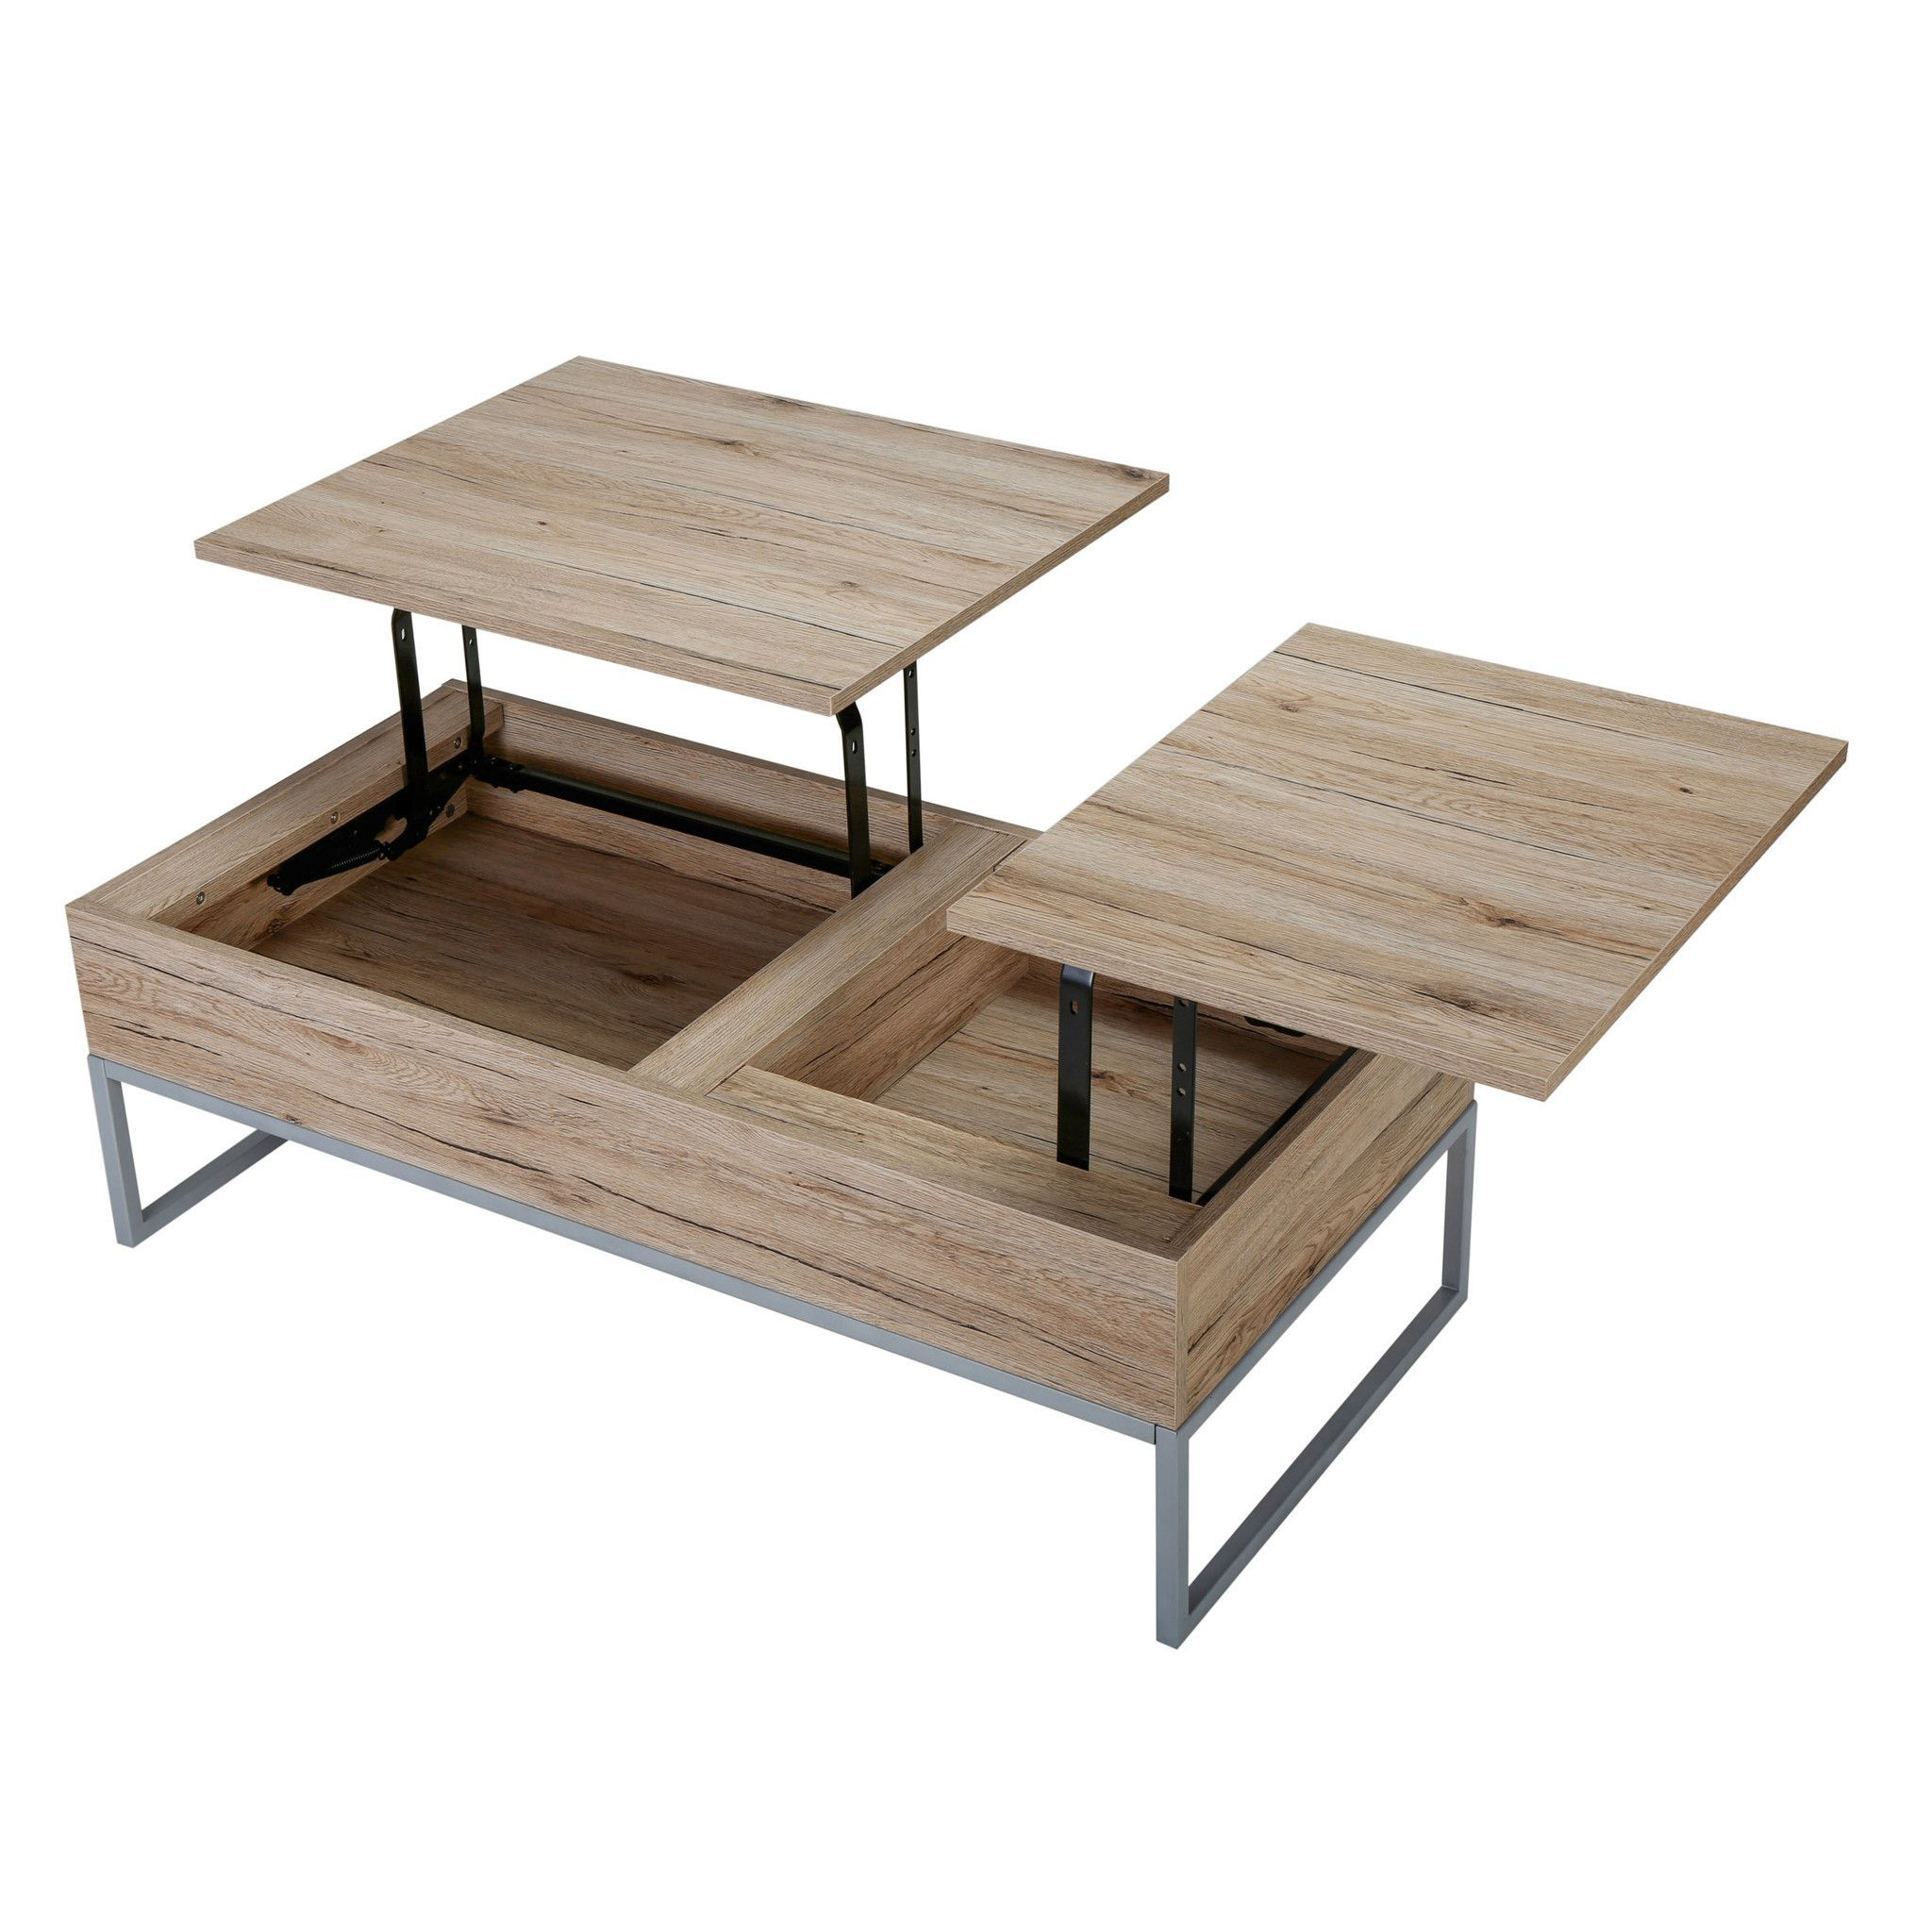 Cerise Rectangle Lift Top Storage Coffee Table Coffee Table With Stools Lift Up Coffee Table Coffee Table [ 2048 x 2048 Pixel ]